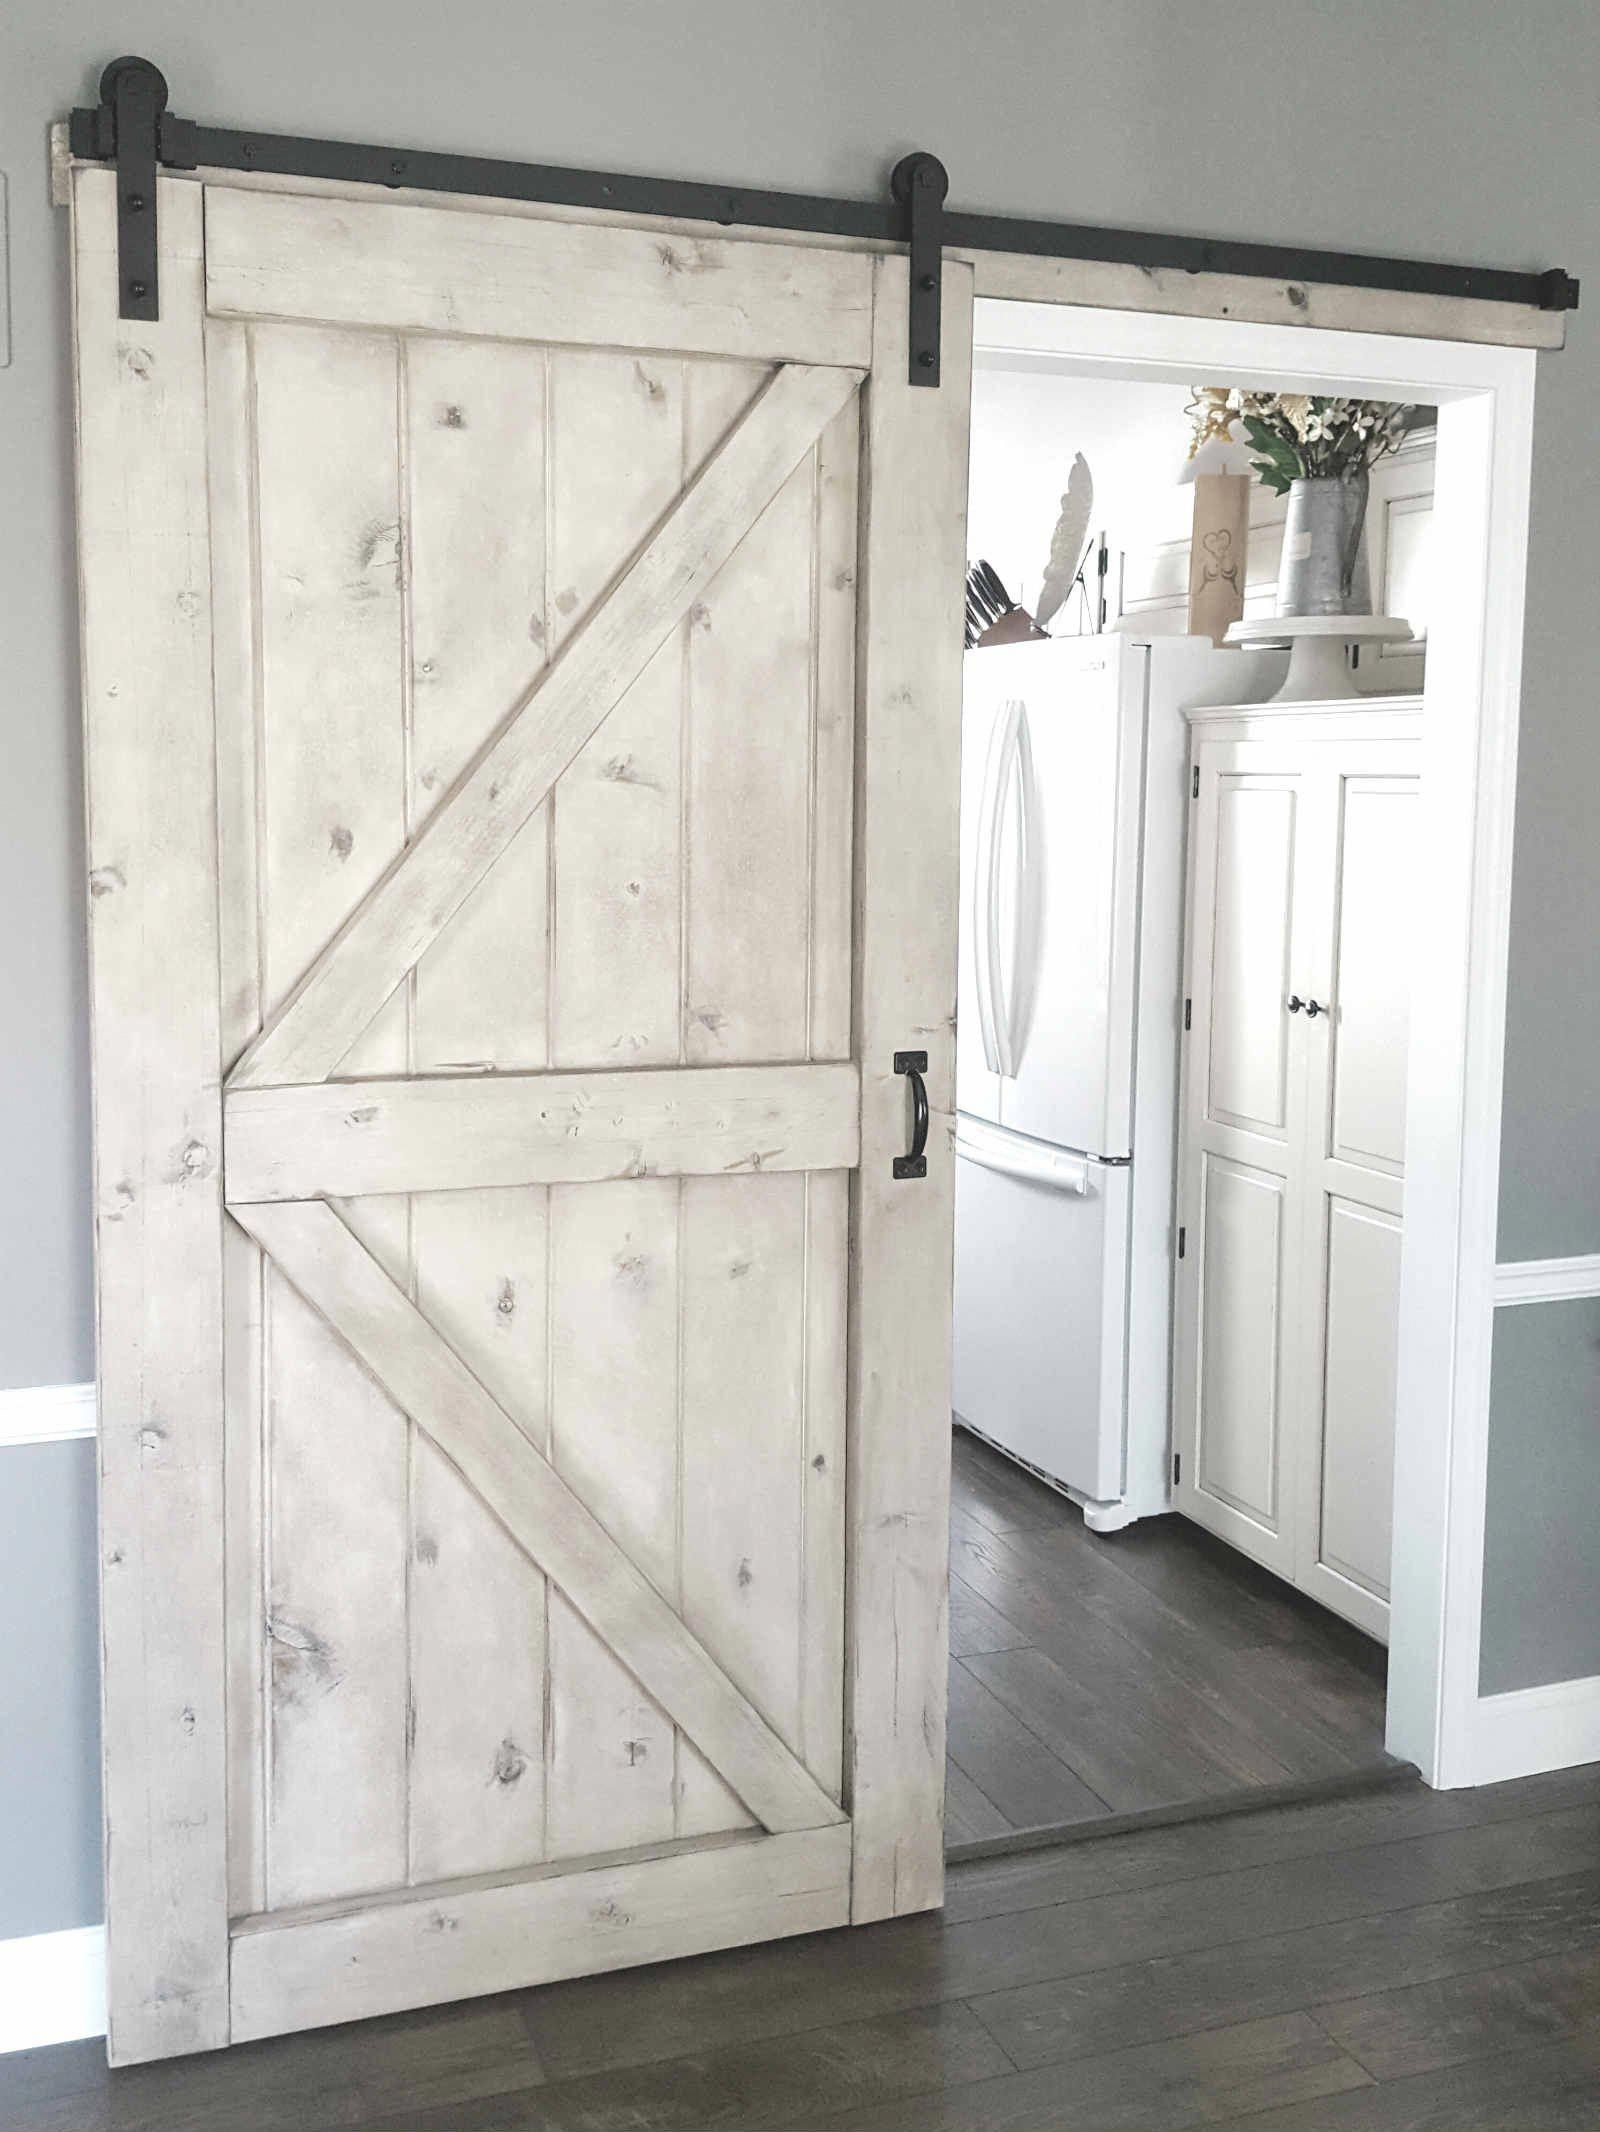 Large Barn Door Contemporary Barn Doors For Sale Barn Style Double Doors 20190701 Diy Sliding Barn Door Barn Door Designs Home Door Design